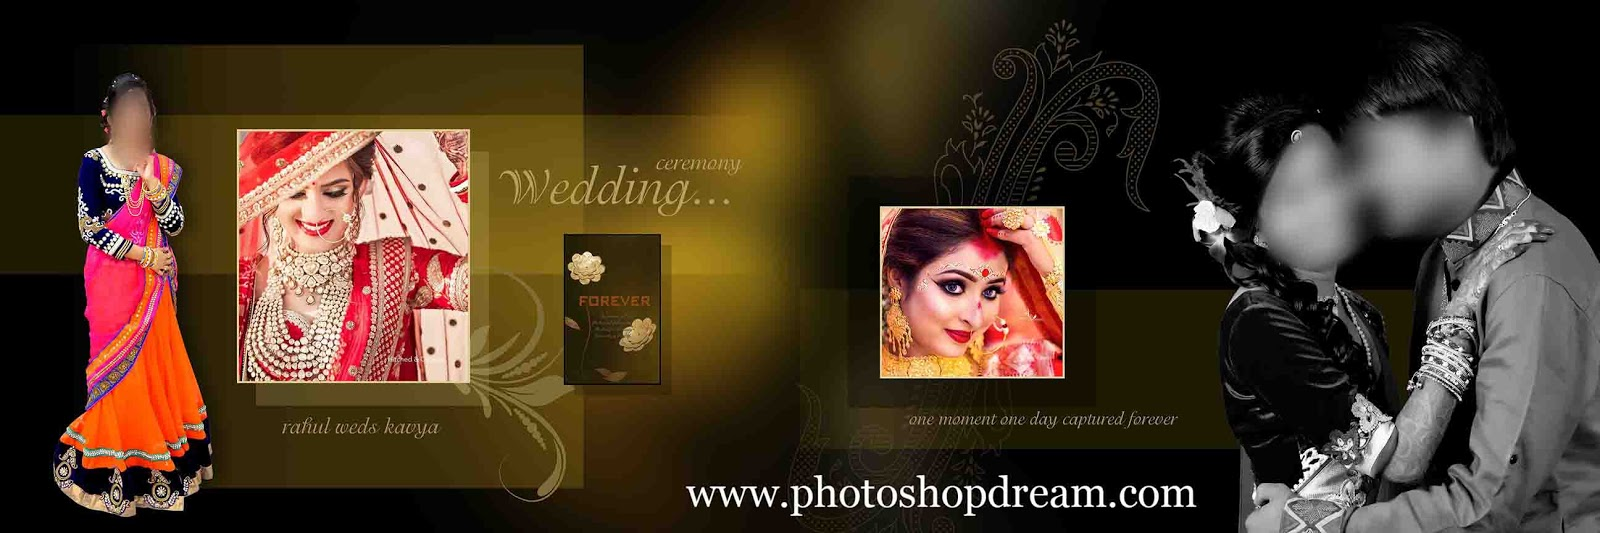 10 Best Free Download Wedding Album PSD Templates 12x36 Collection